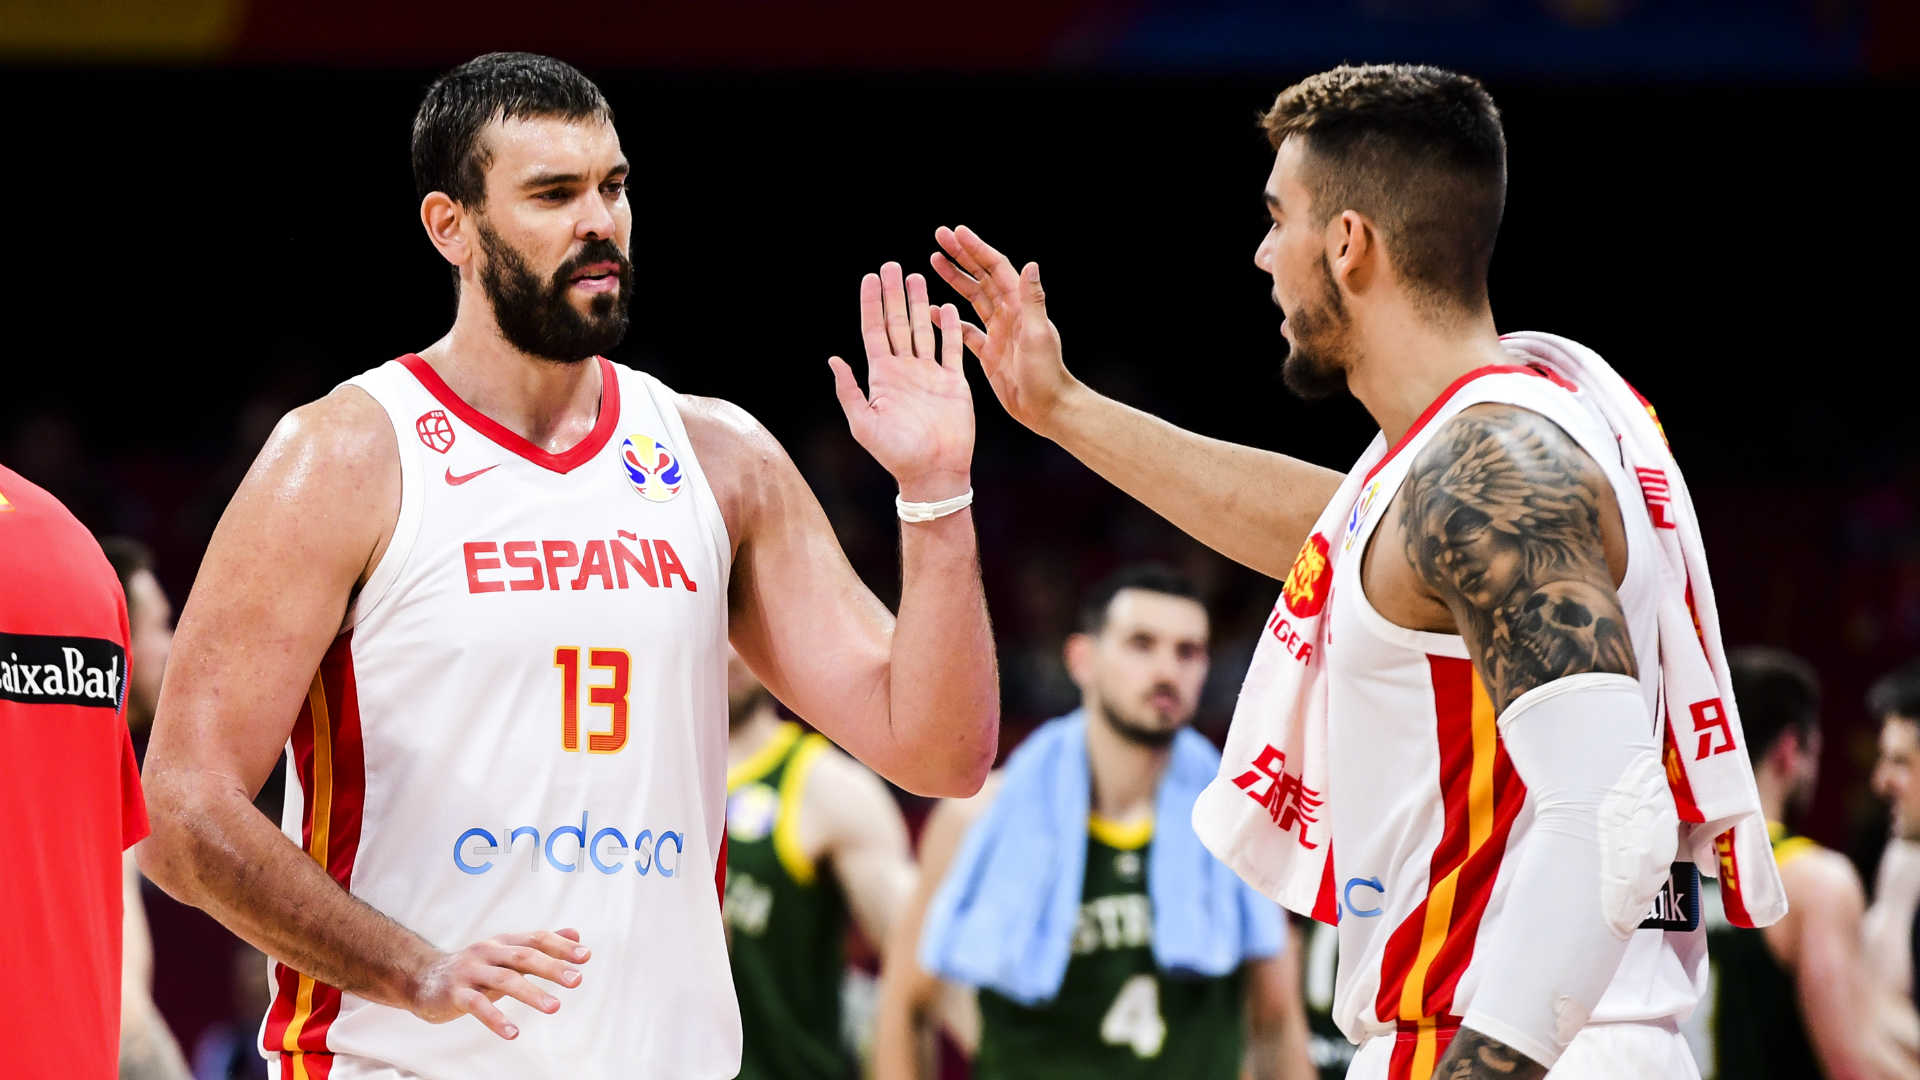 FIBA World Cup 2019: Spain, Argentina set to play for gold medal